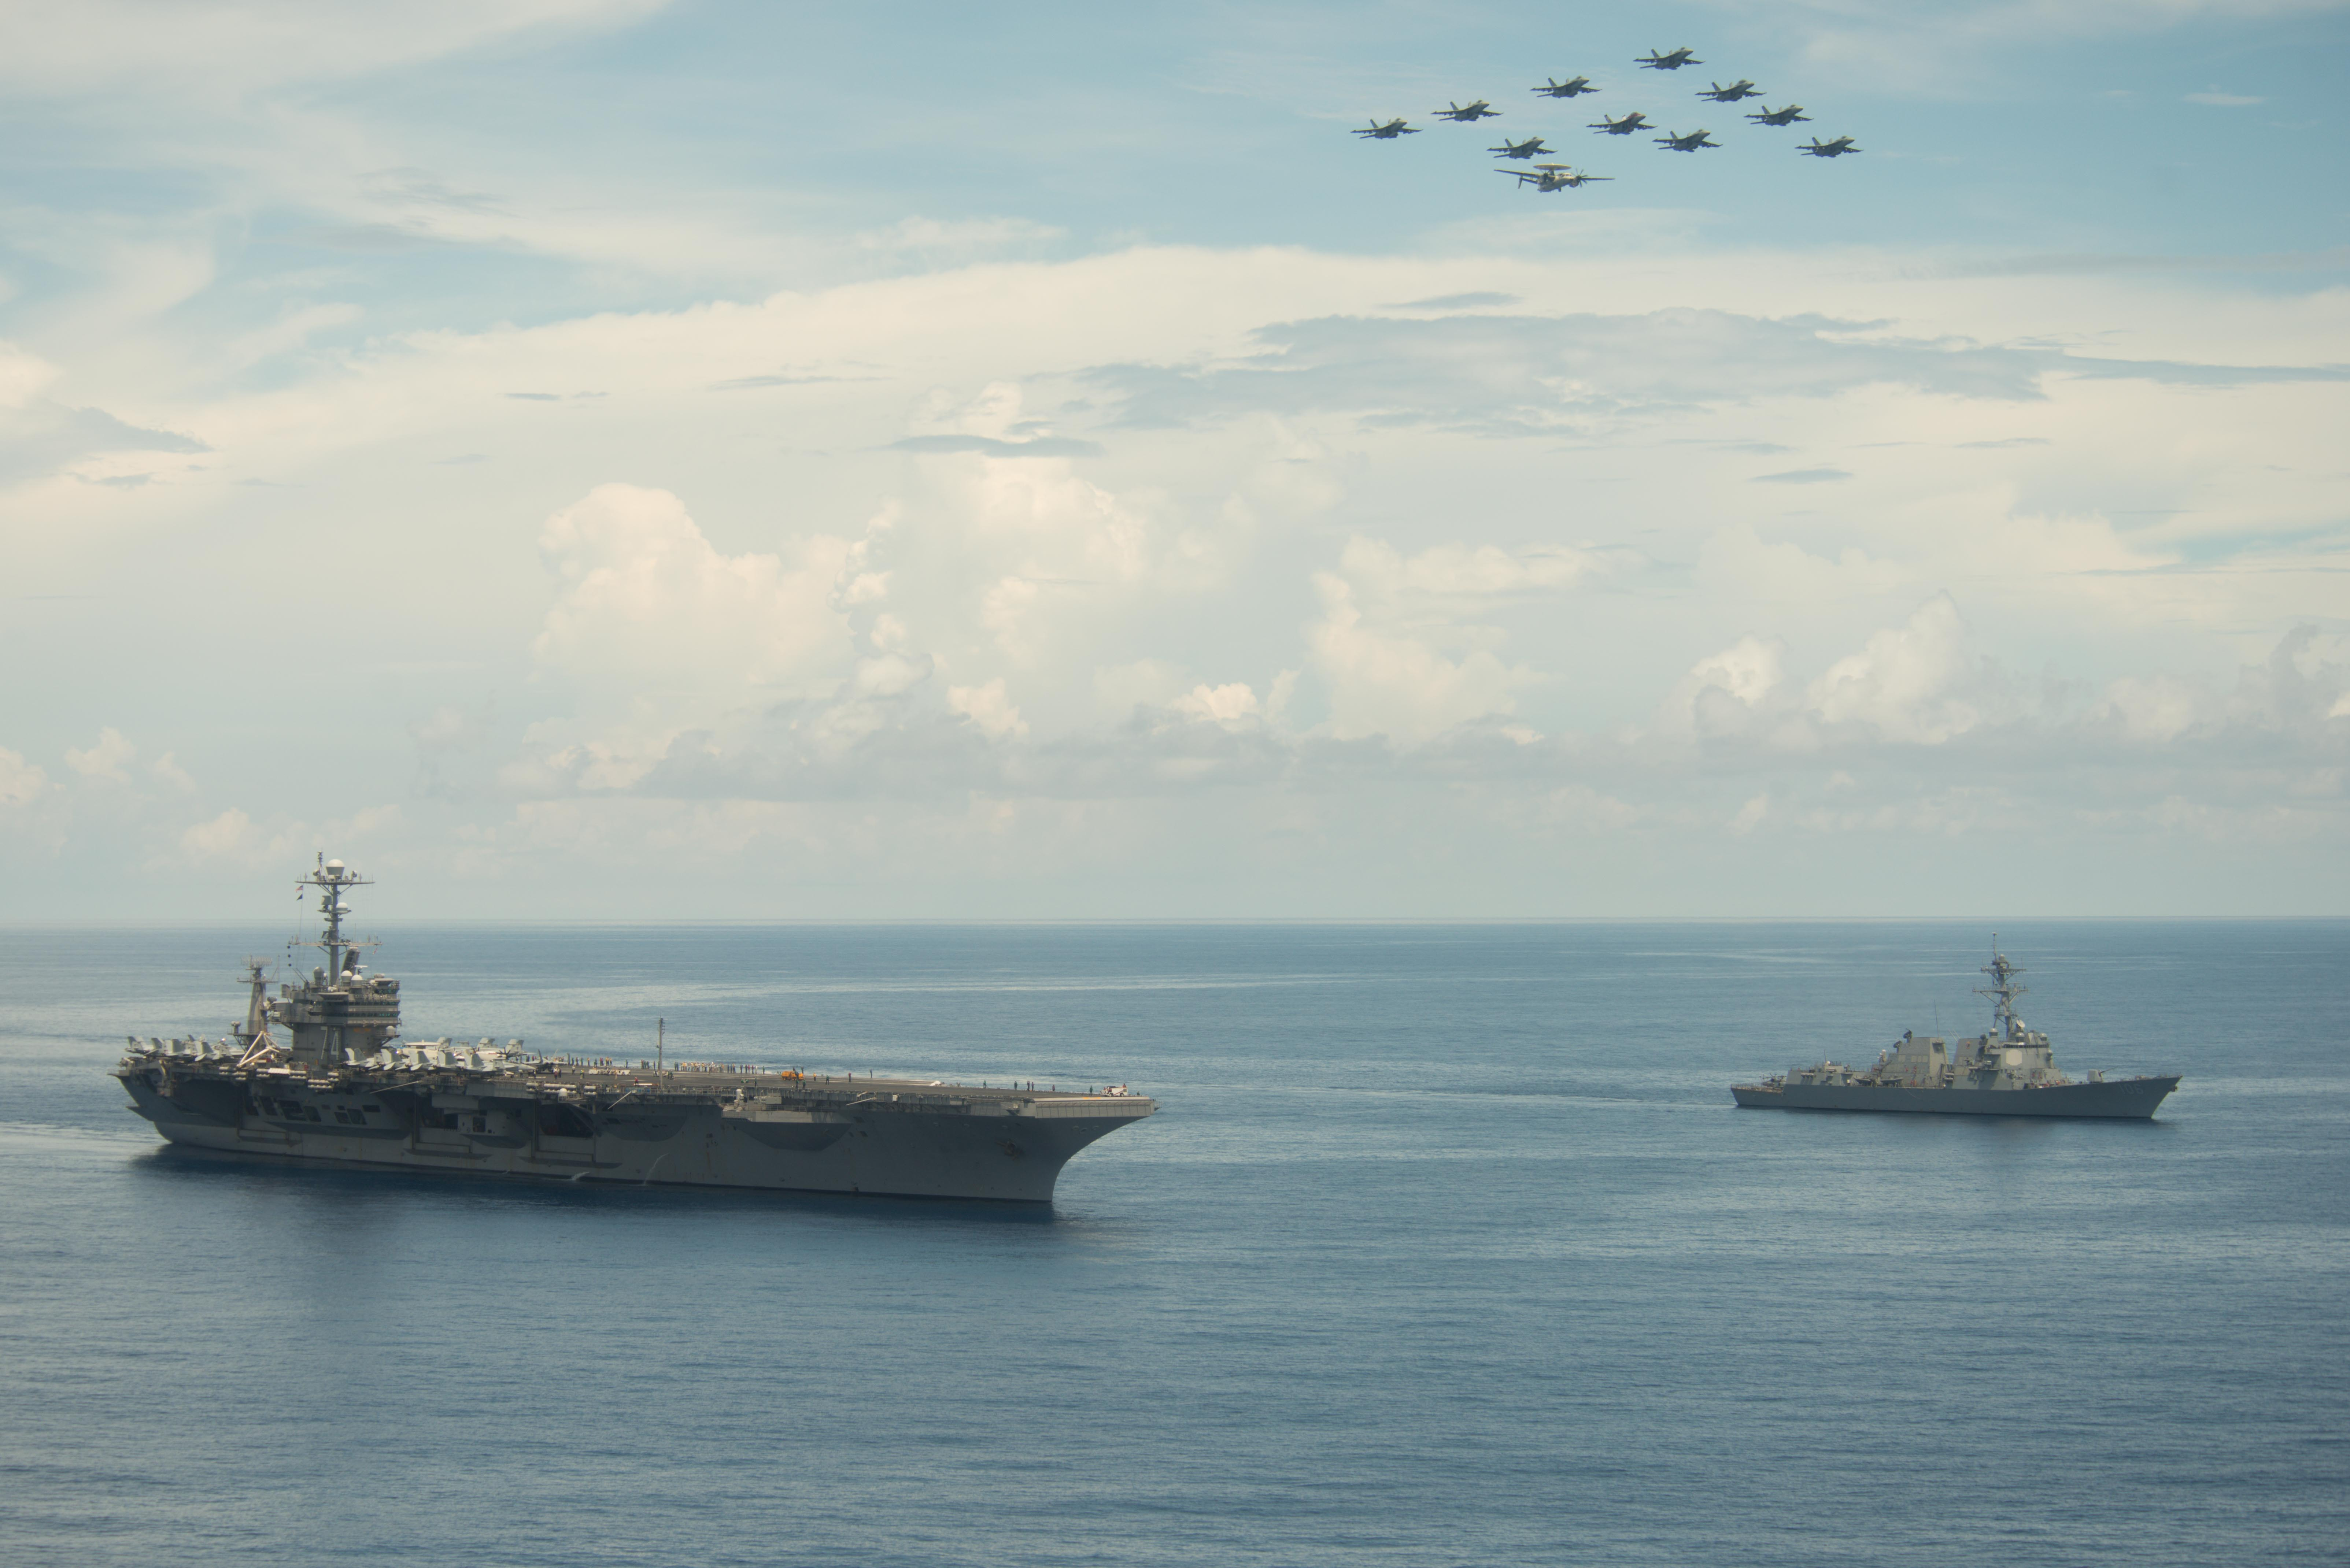 Aircraft assigned to Carrier Air Wing (CVW) 9 fly in formation above USS John C. Stennis (CVN 74) and the guided-missile destroyer USS Stockdale (DDG 106) during an air-and-sea-power demonstration in the South China Sea on May 17, 2016. US Navy photo.